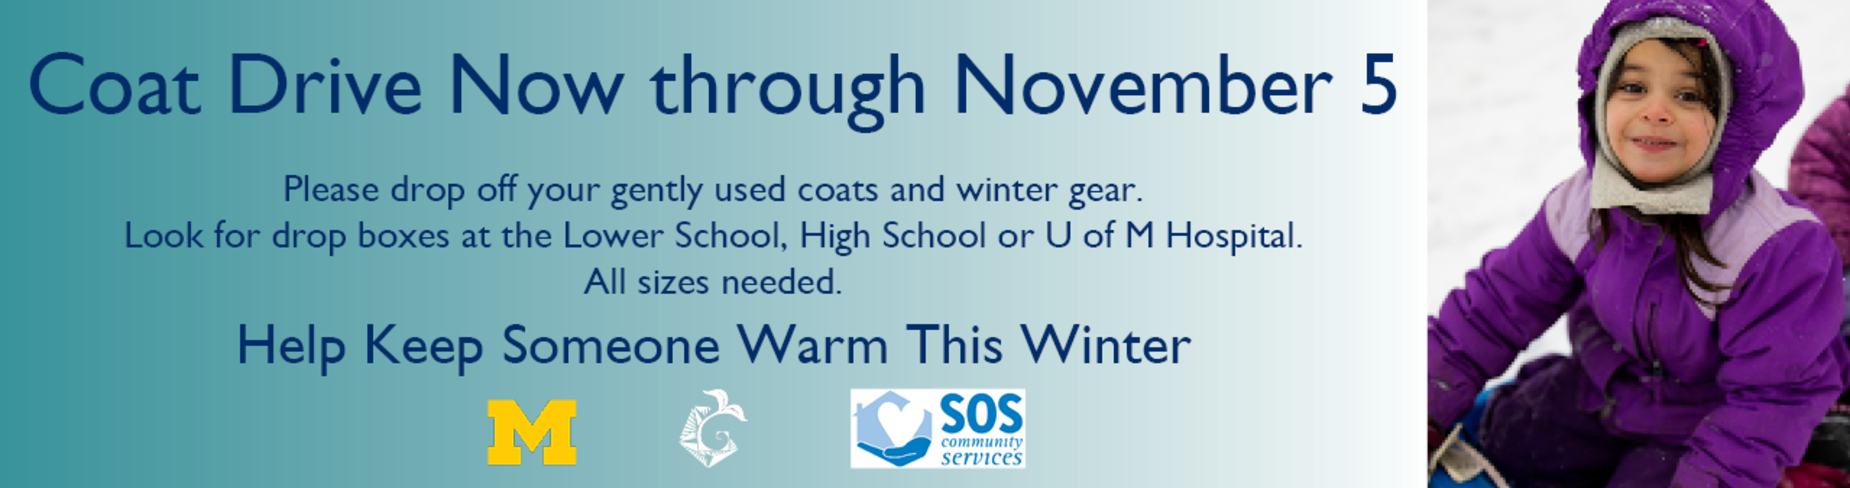 Coat Drive Now Through November 5